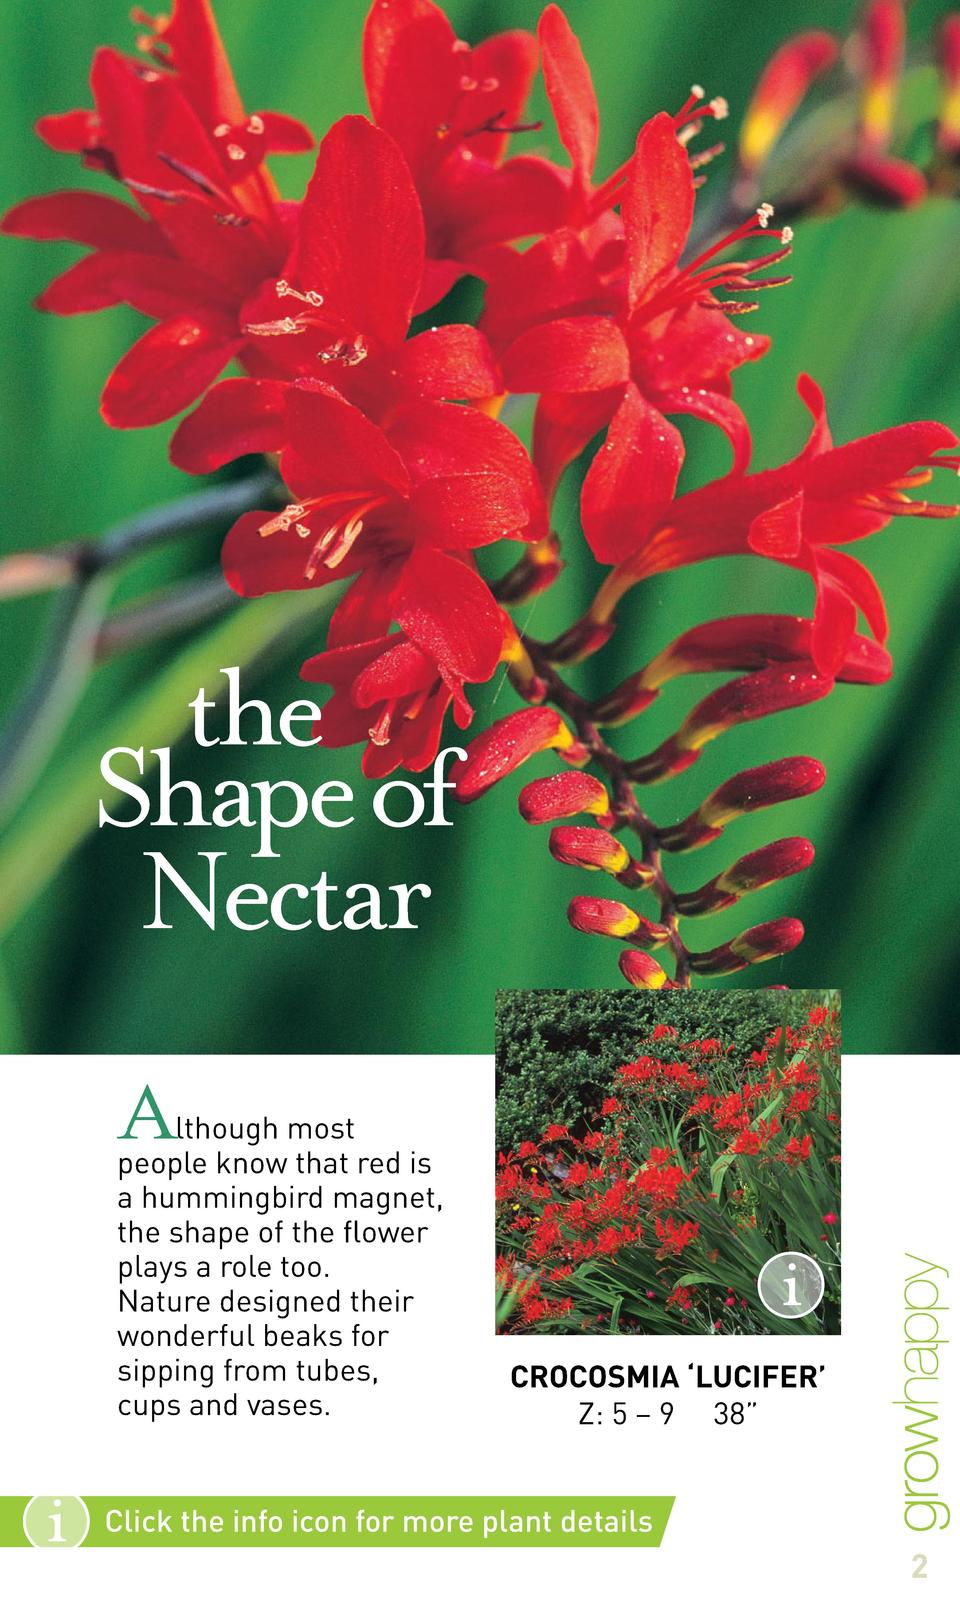 the Shape of Nectar A  lthough most people know that red is a hummingbird magnet, the shape of the flower plays a role too...